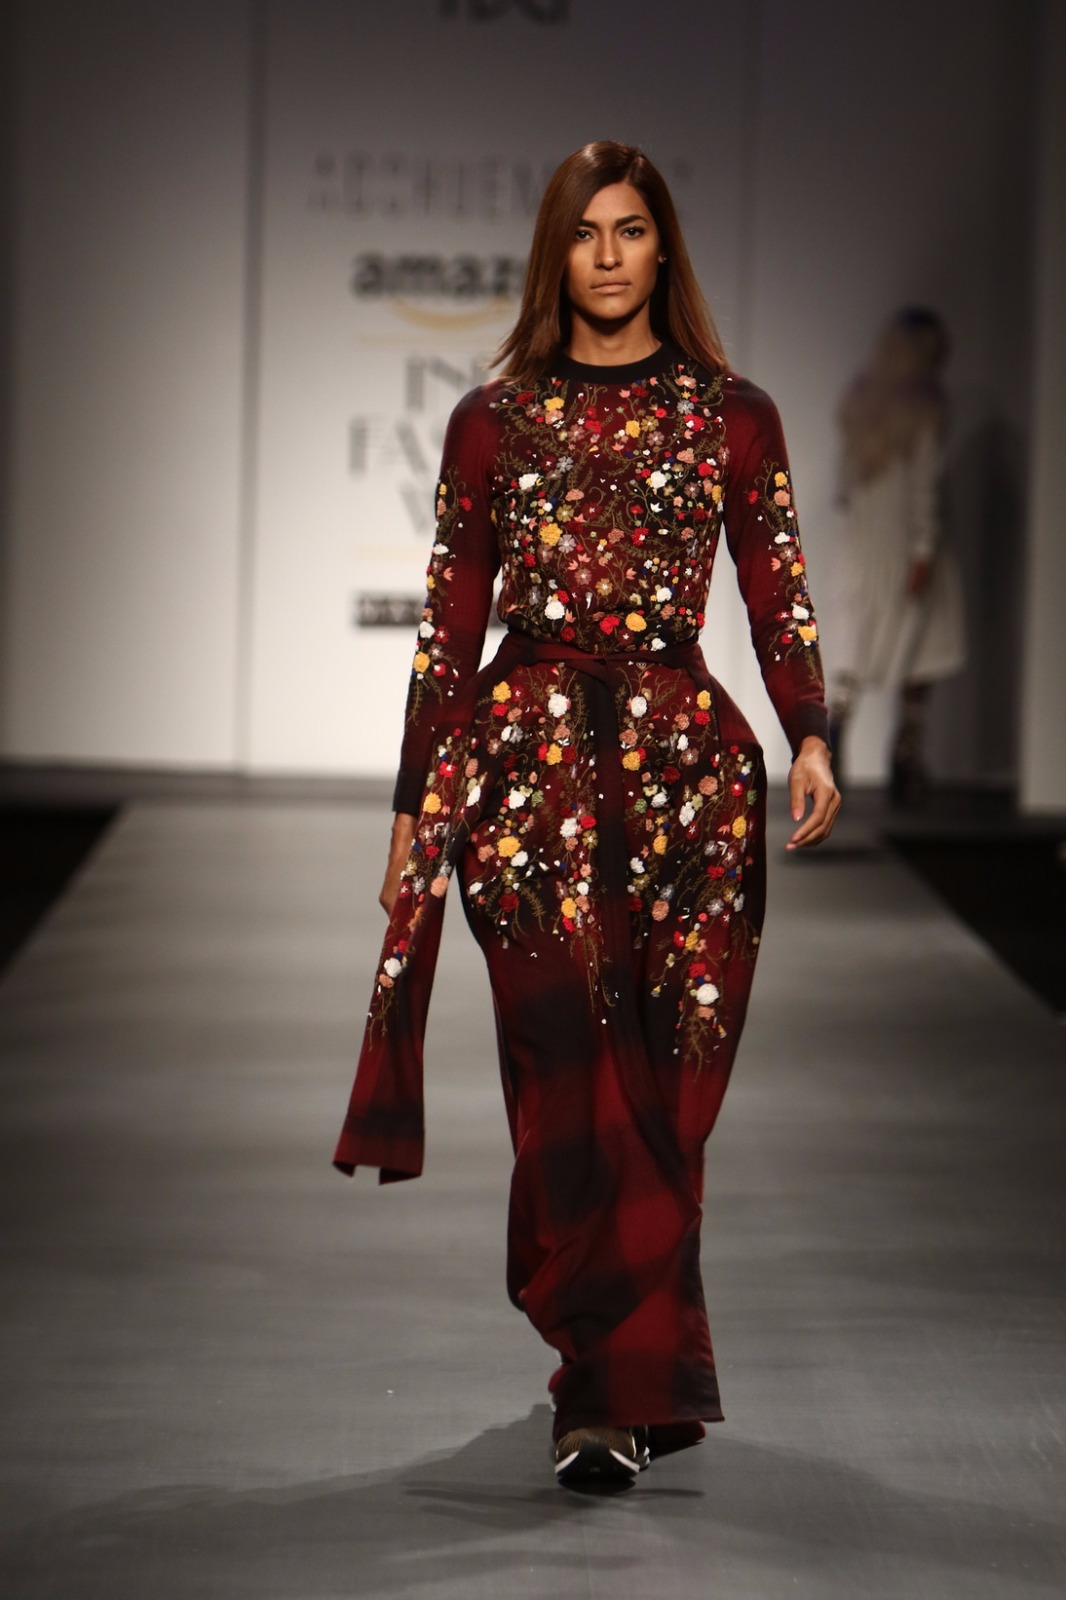 http://www.talksassy.com/wp-content/uploads/2017/03/Amazon-India-Fashion-Week-Autumn-Winter-2017-4.jpg